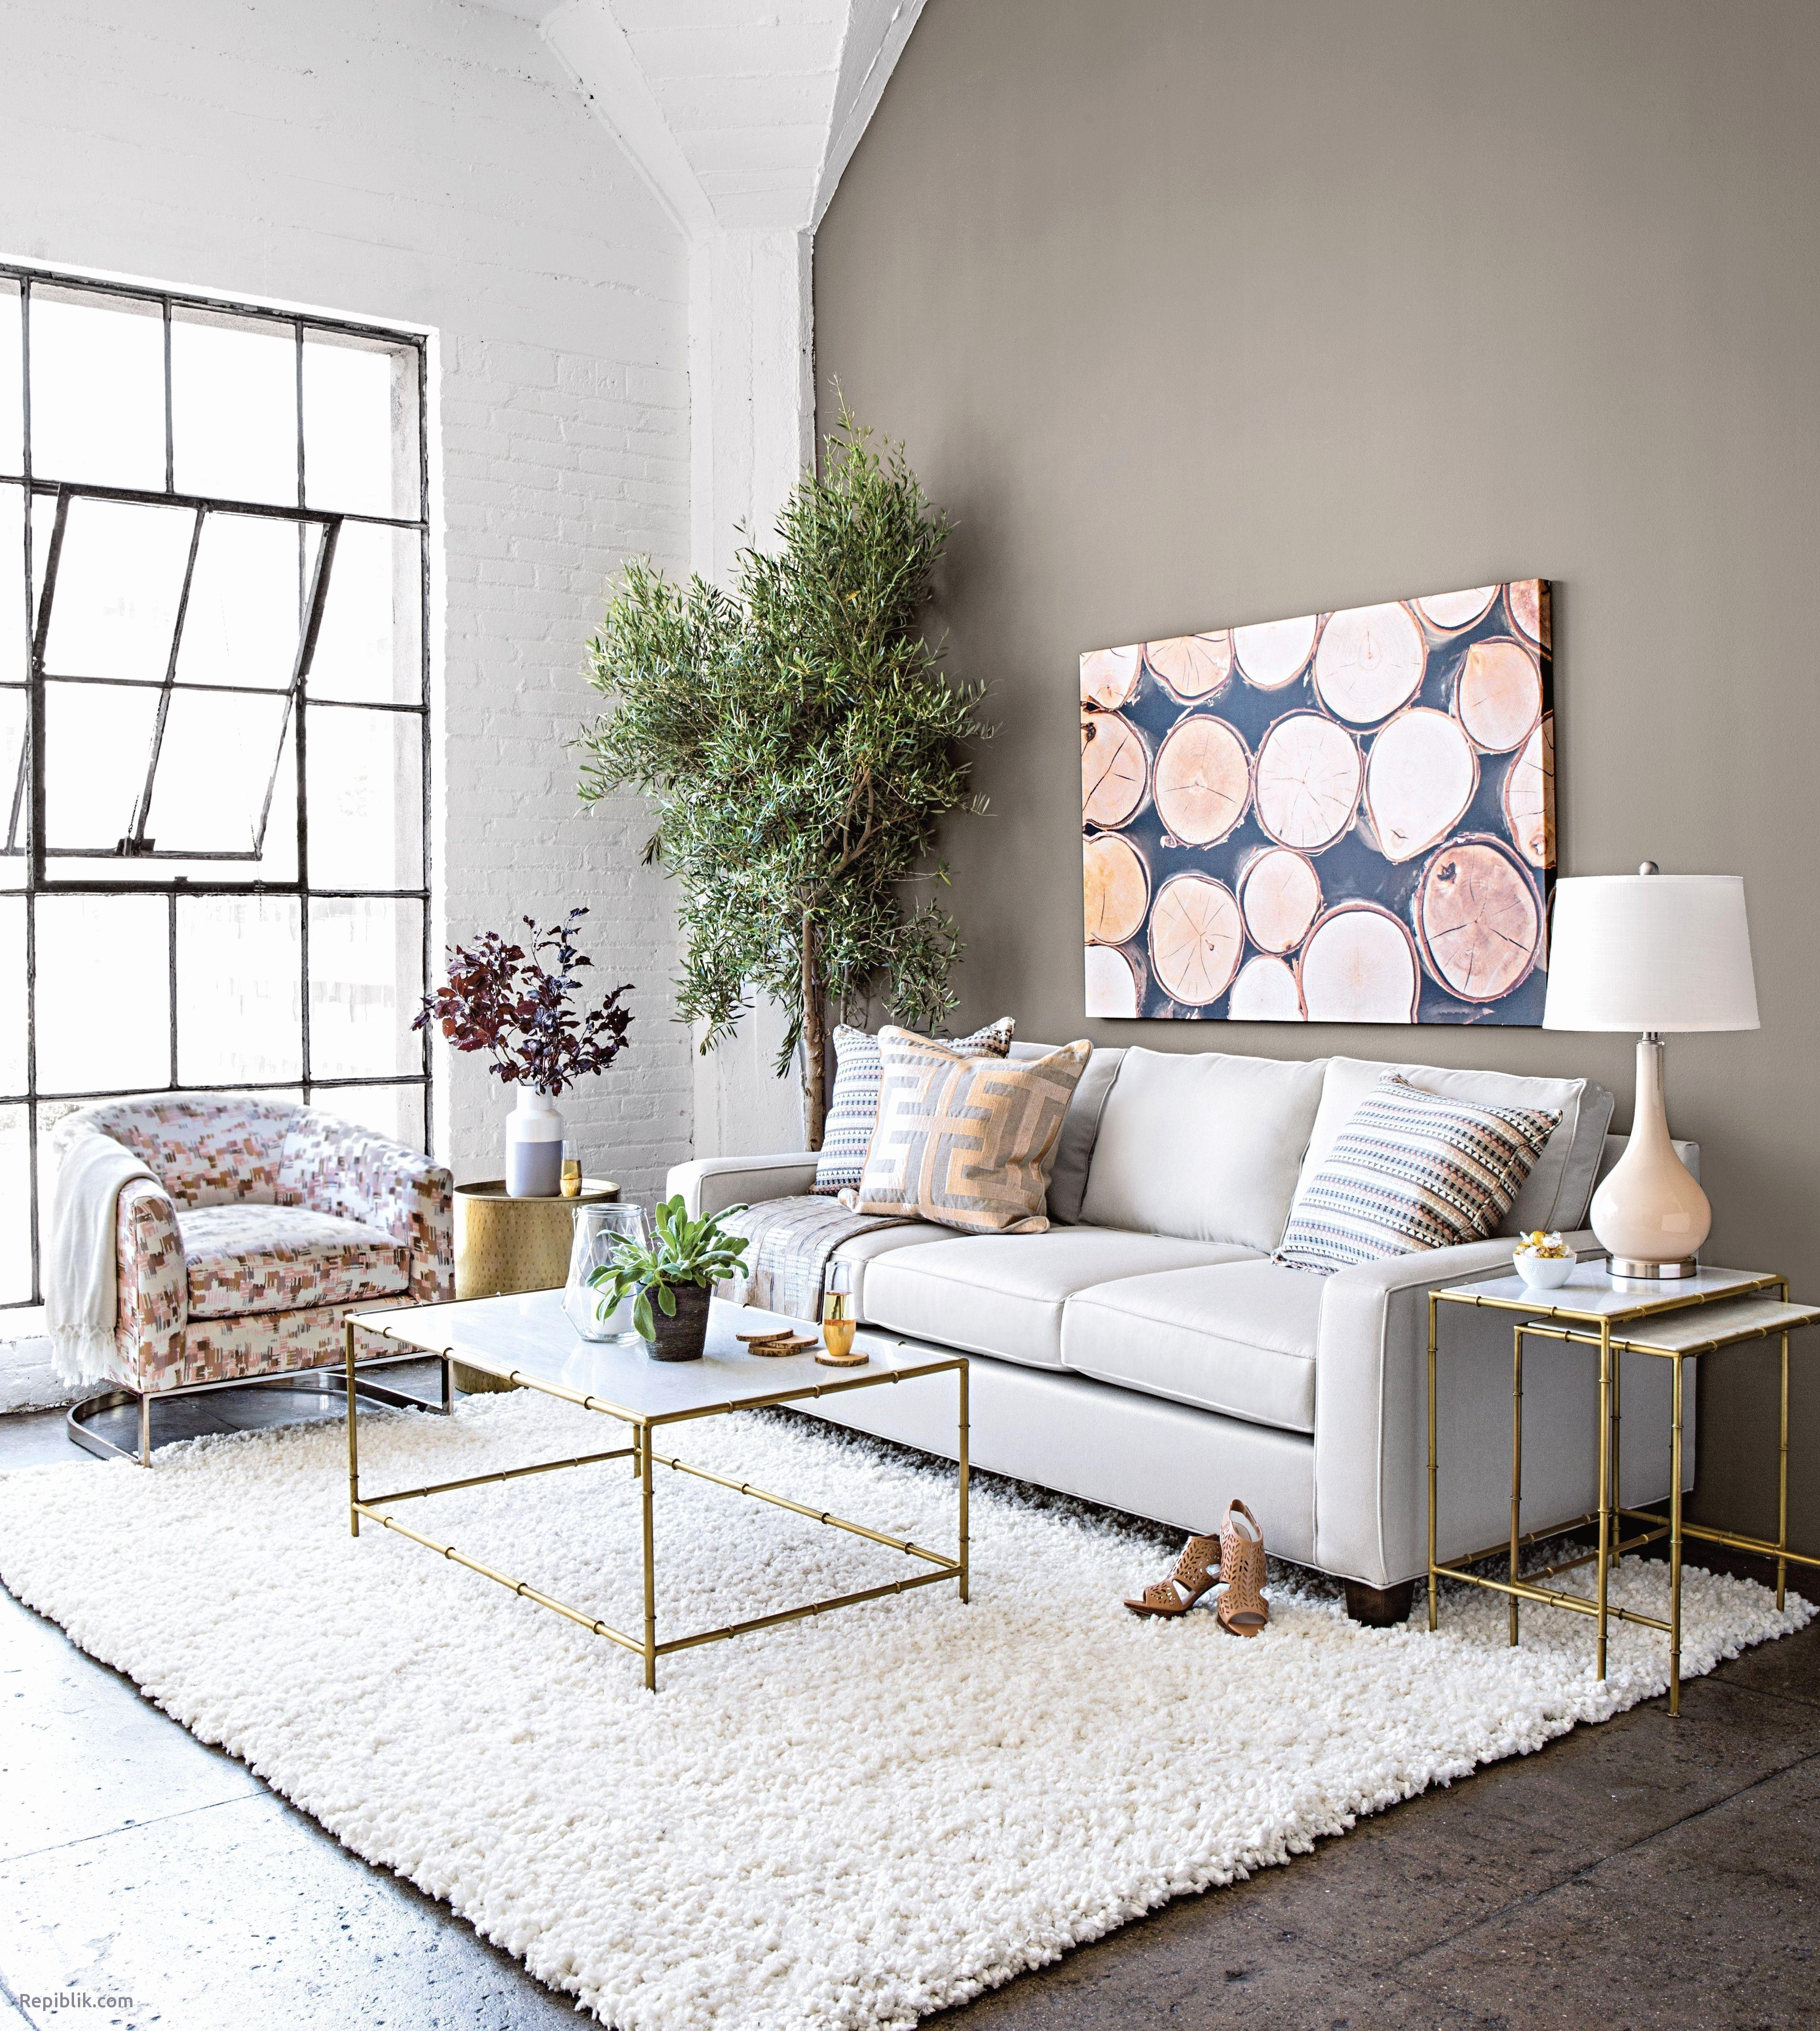 coffee table decorative accents ideas gallery tables decorating for living room elegant collection fresh drum stool live edge wood chair covers outdoor furniture brass and marble